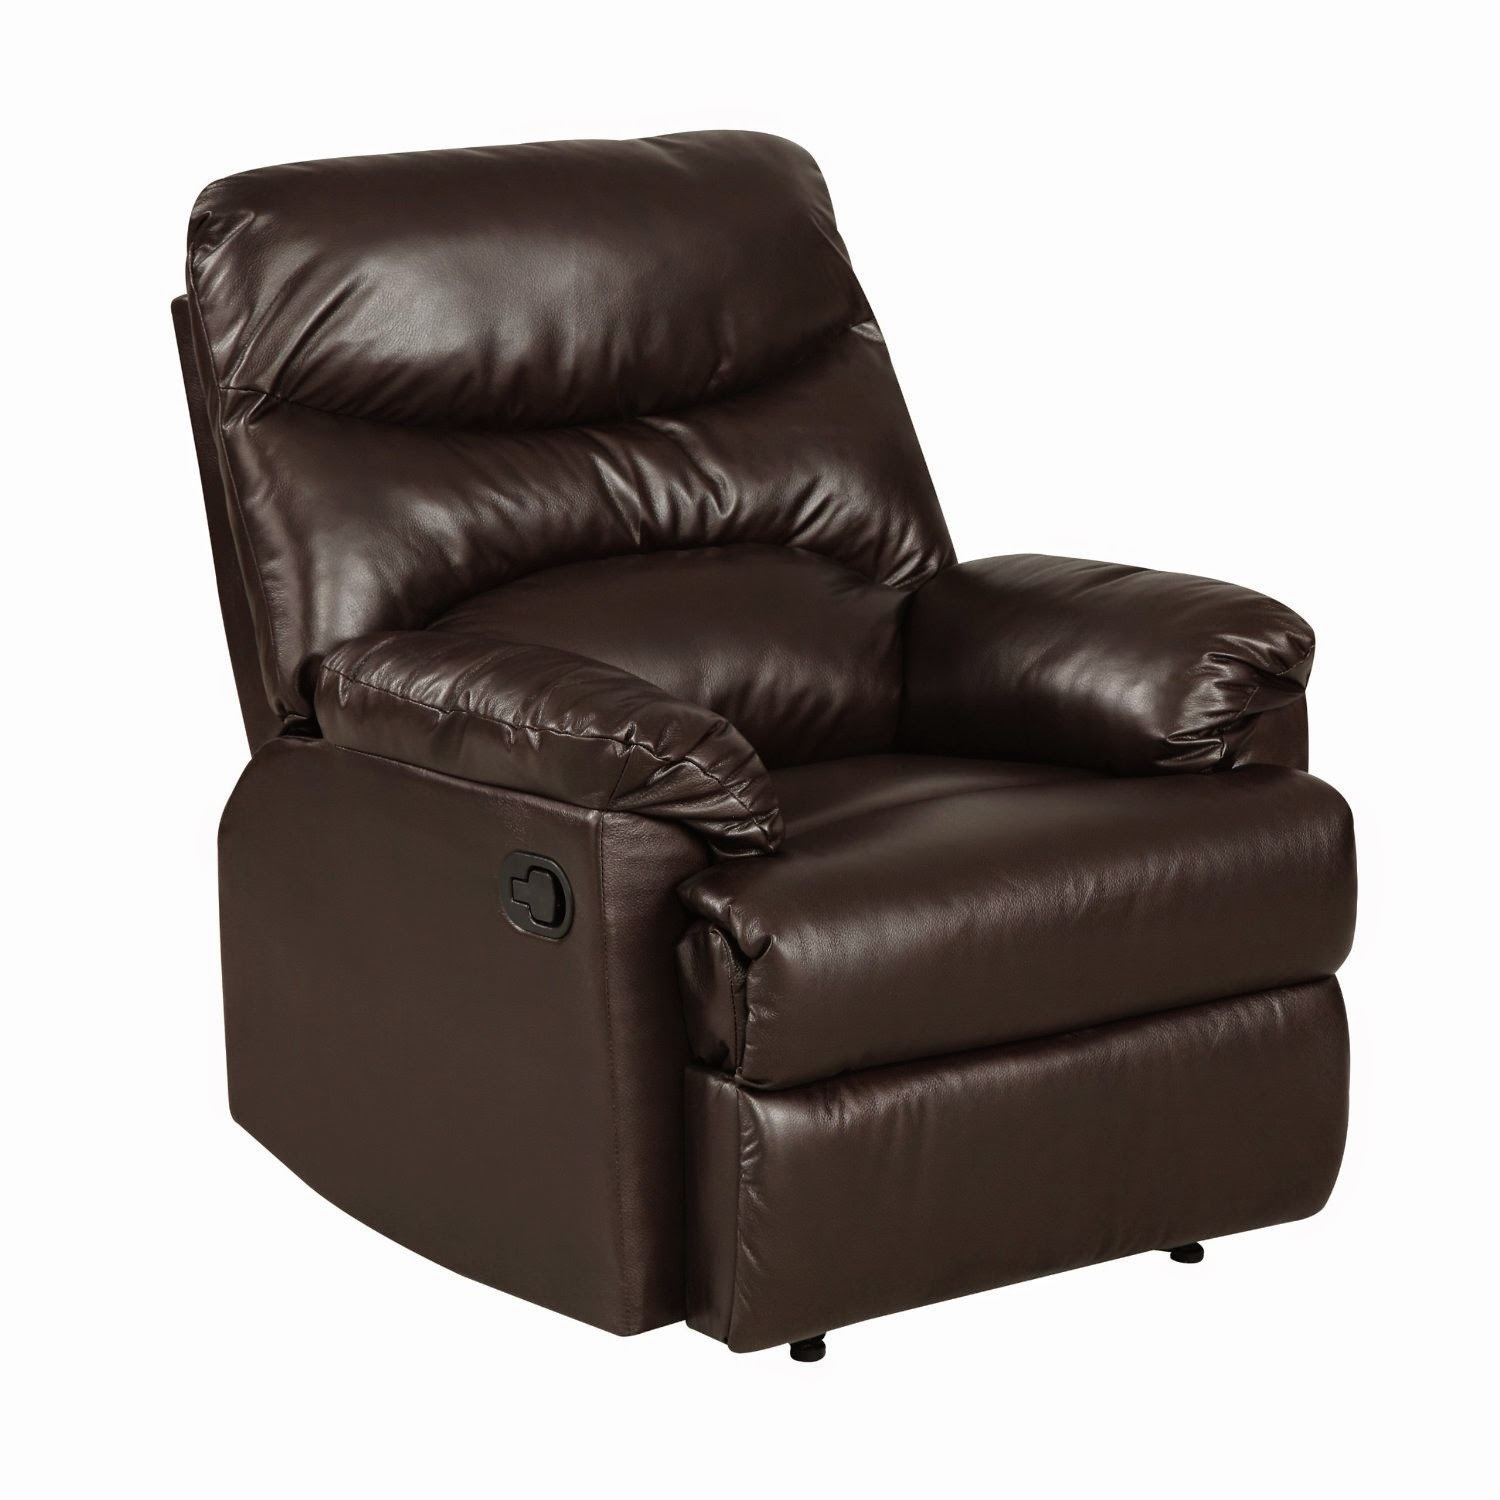 Cheap Sofas On Sale: Reclining Sofas For Sale Cheap: Small Reclining Sofas